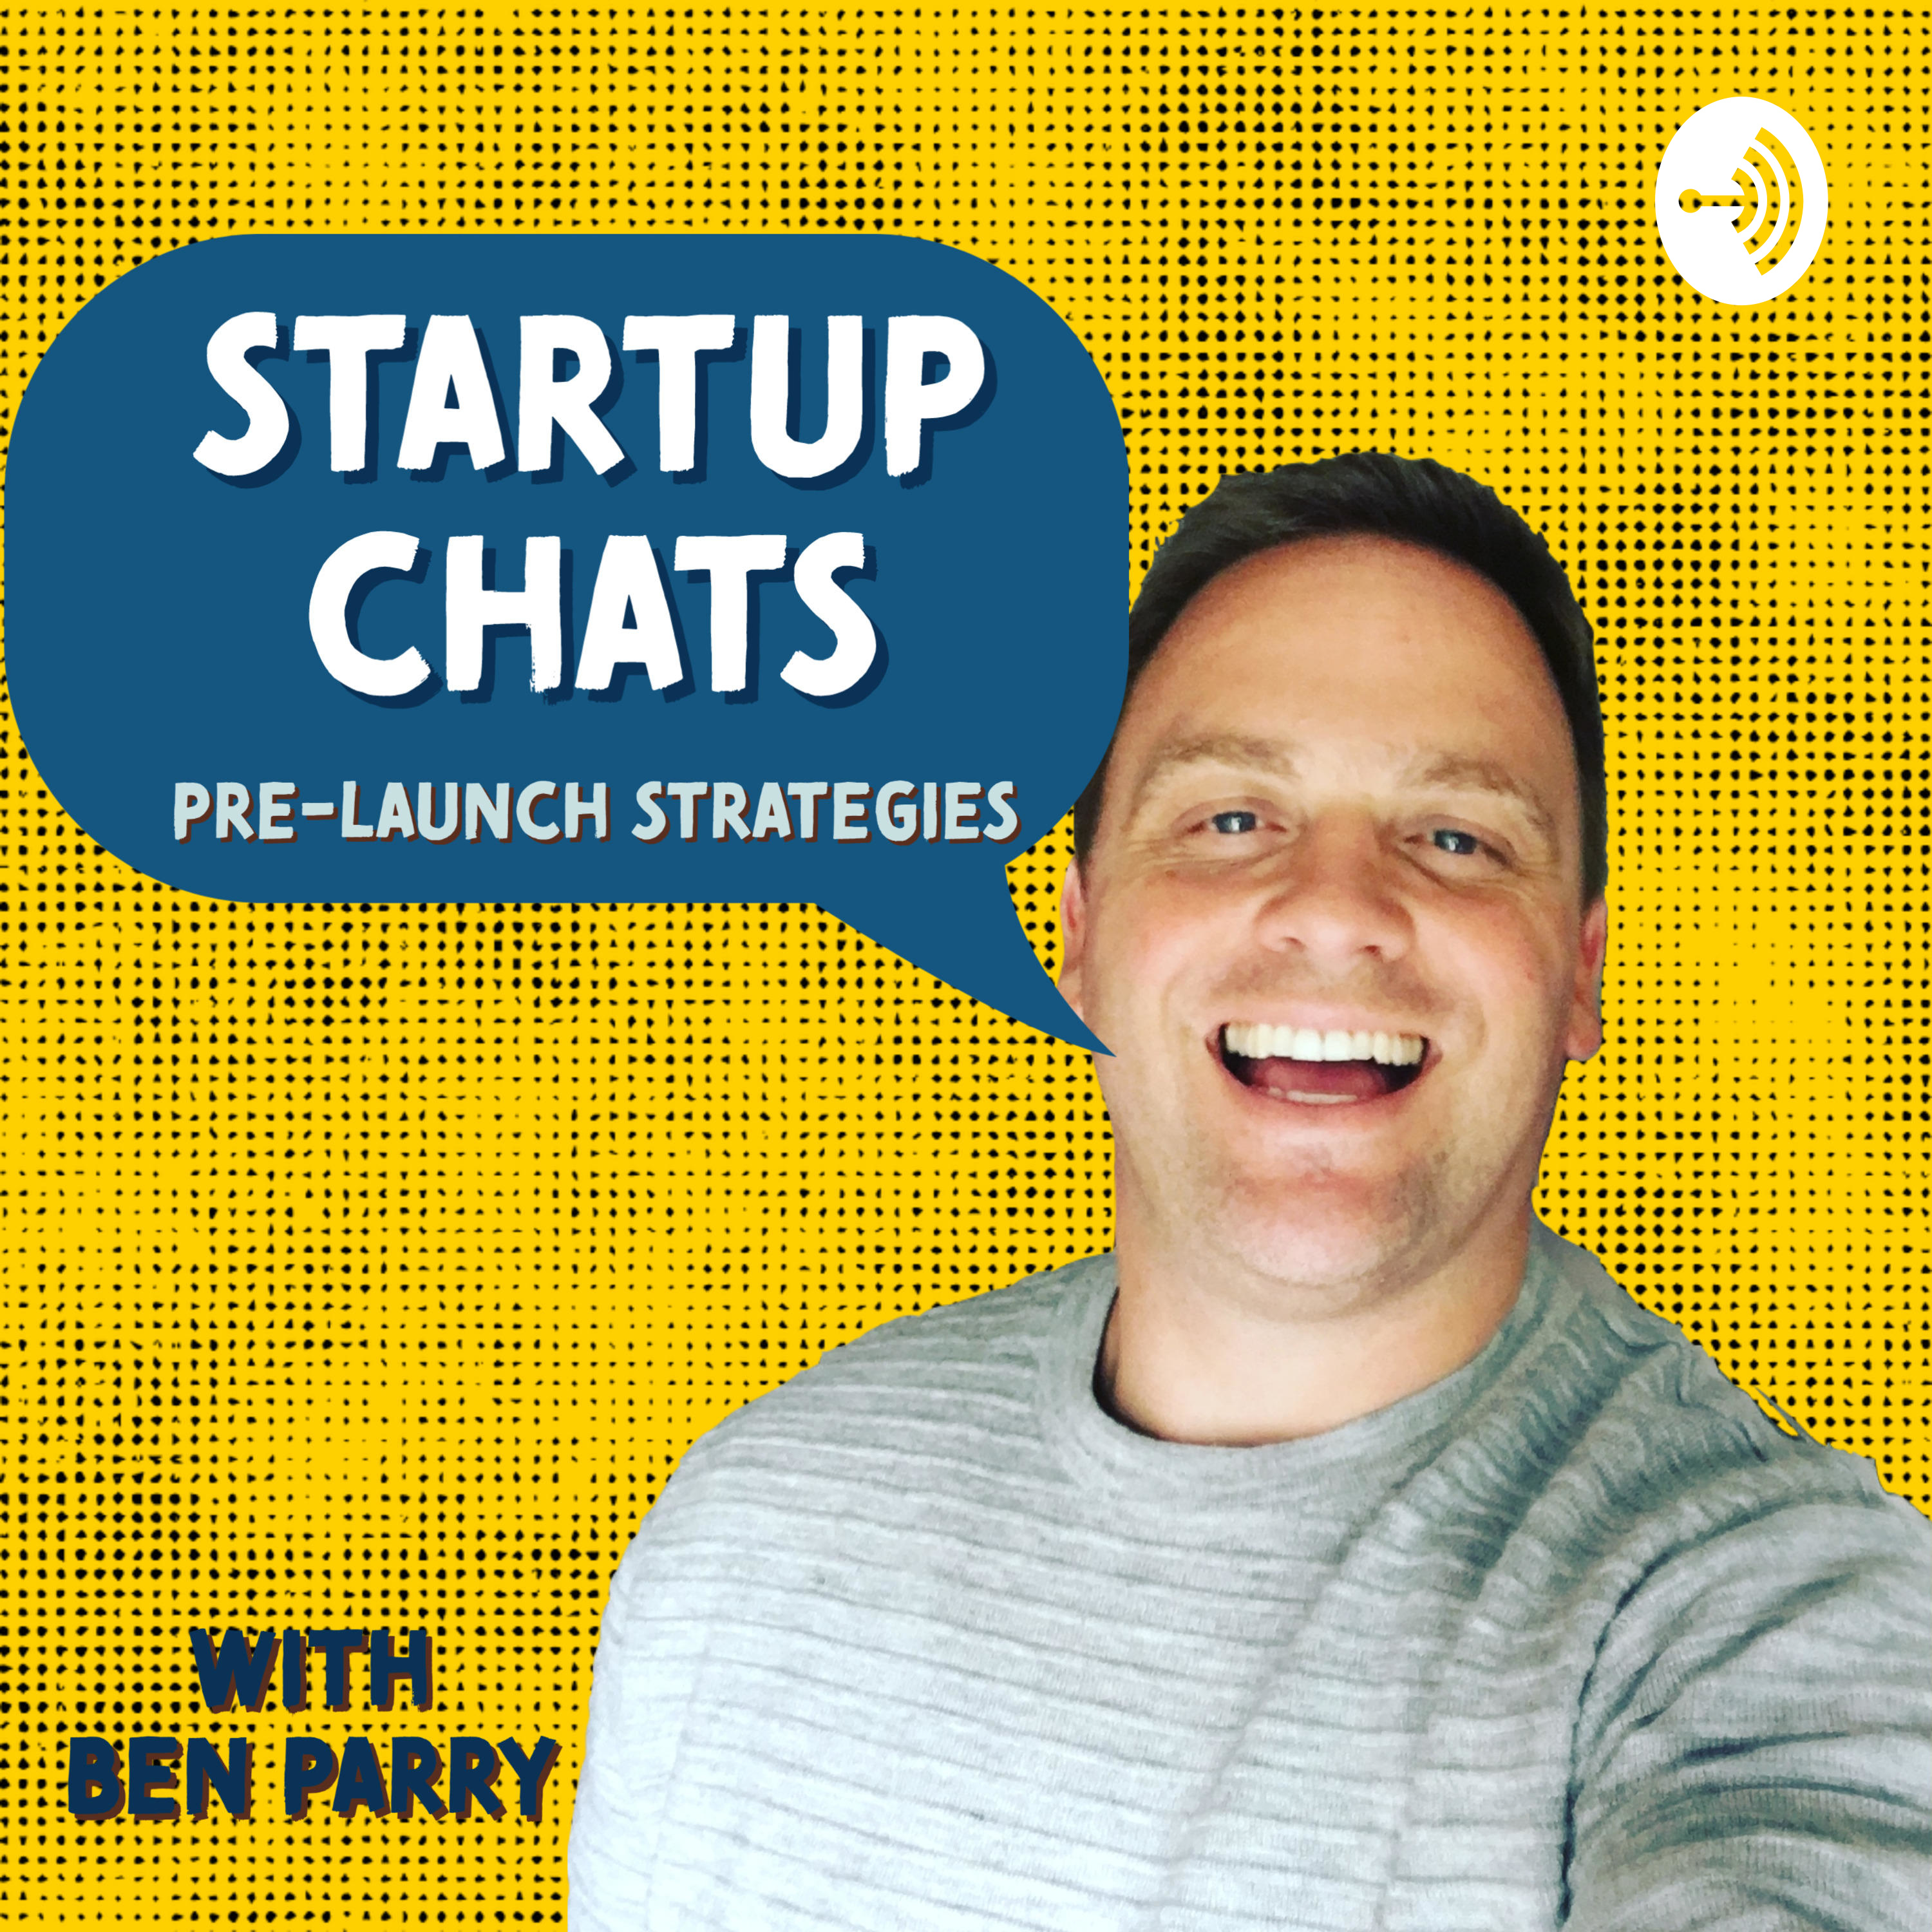 Startup Chats with Ben Parry